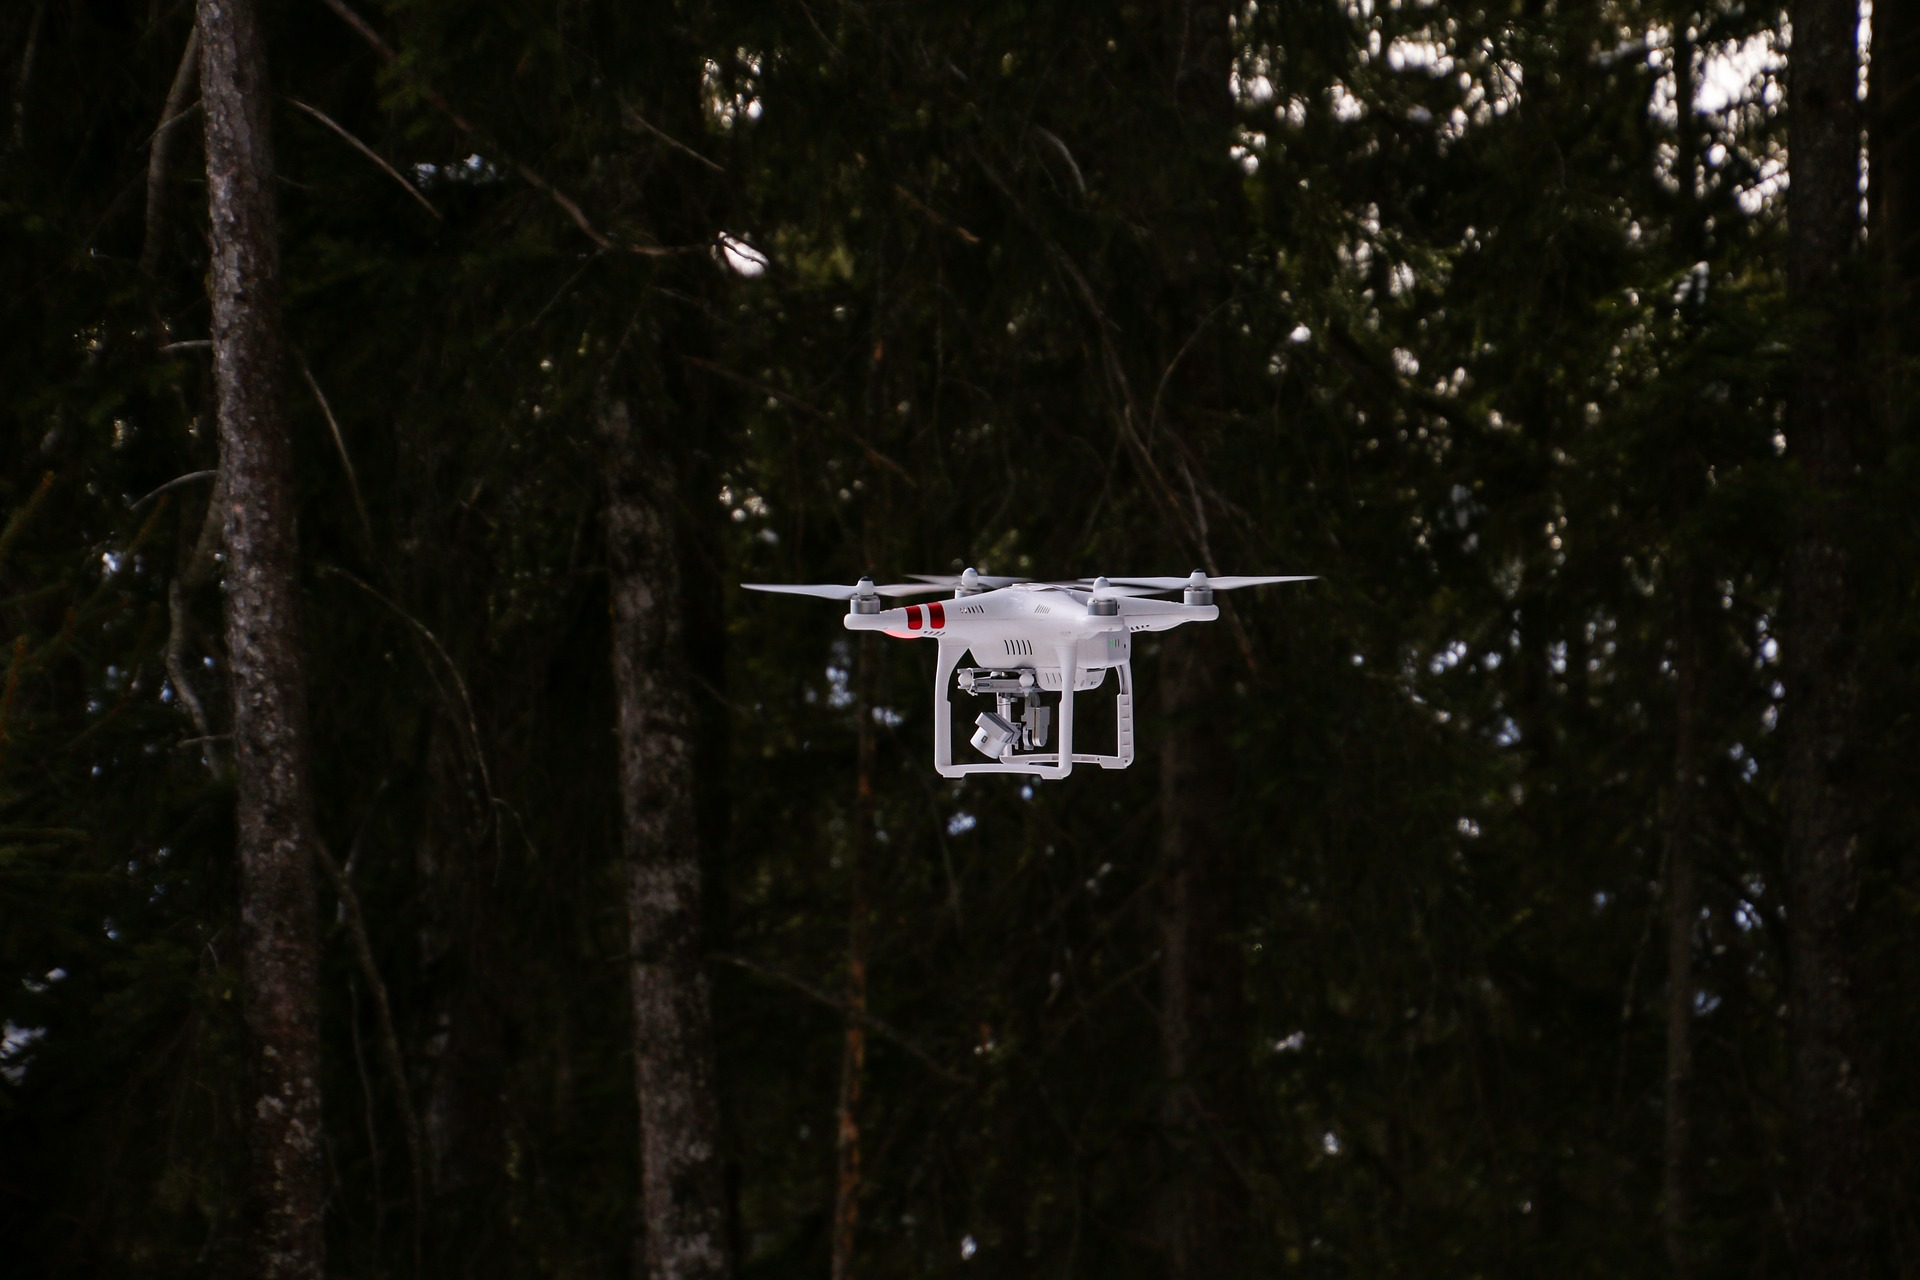 Drone flying close to forrest